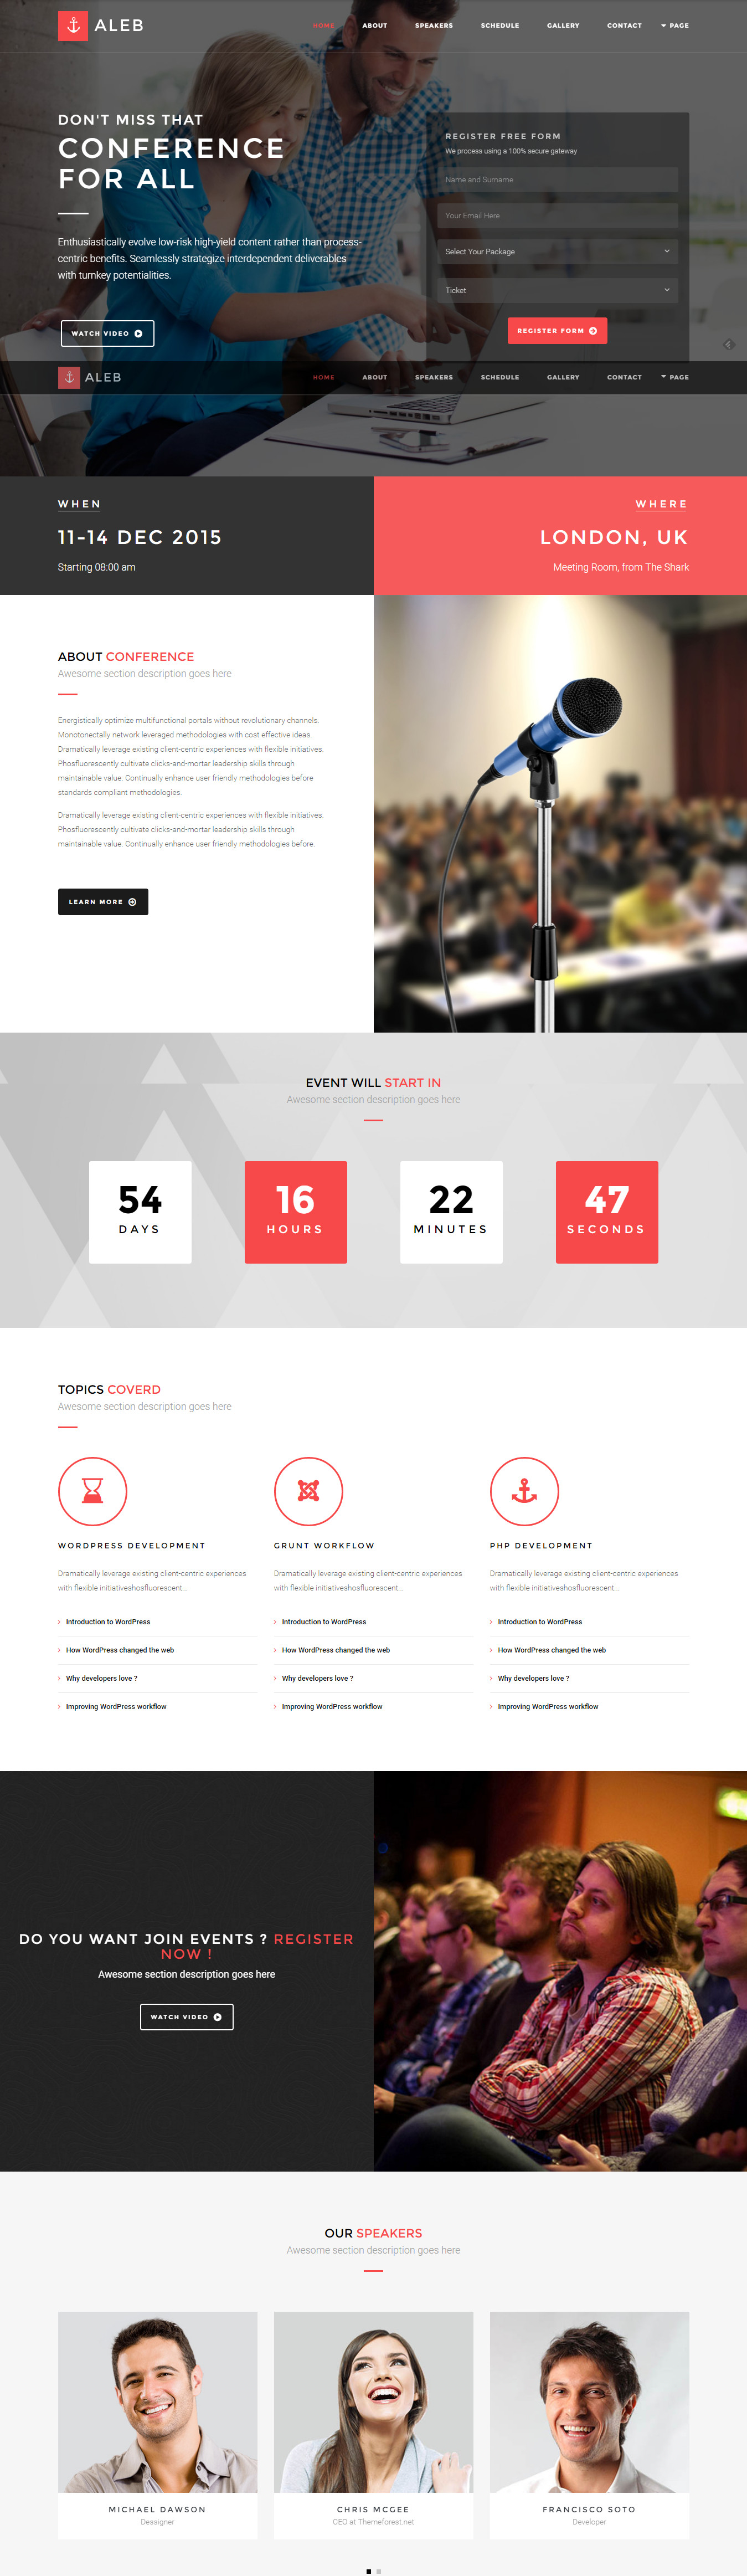 Aleb - Event & Conference Onepage WordPress Theme